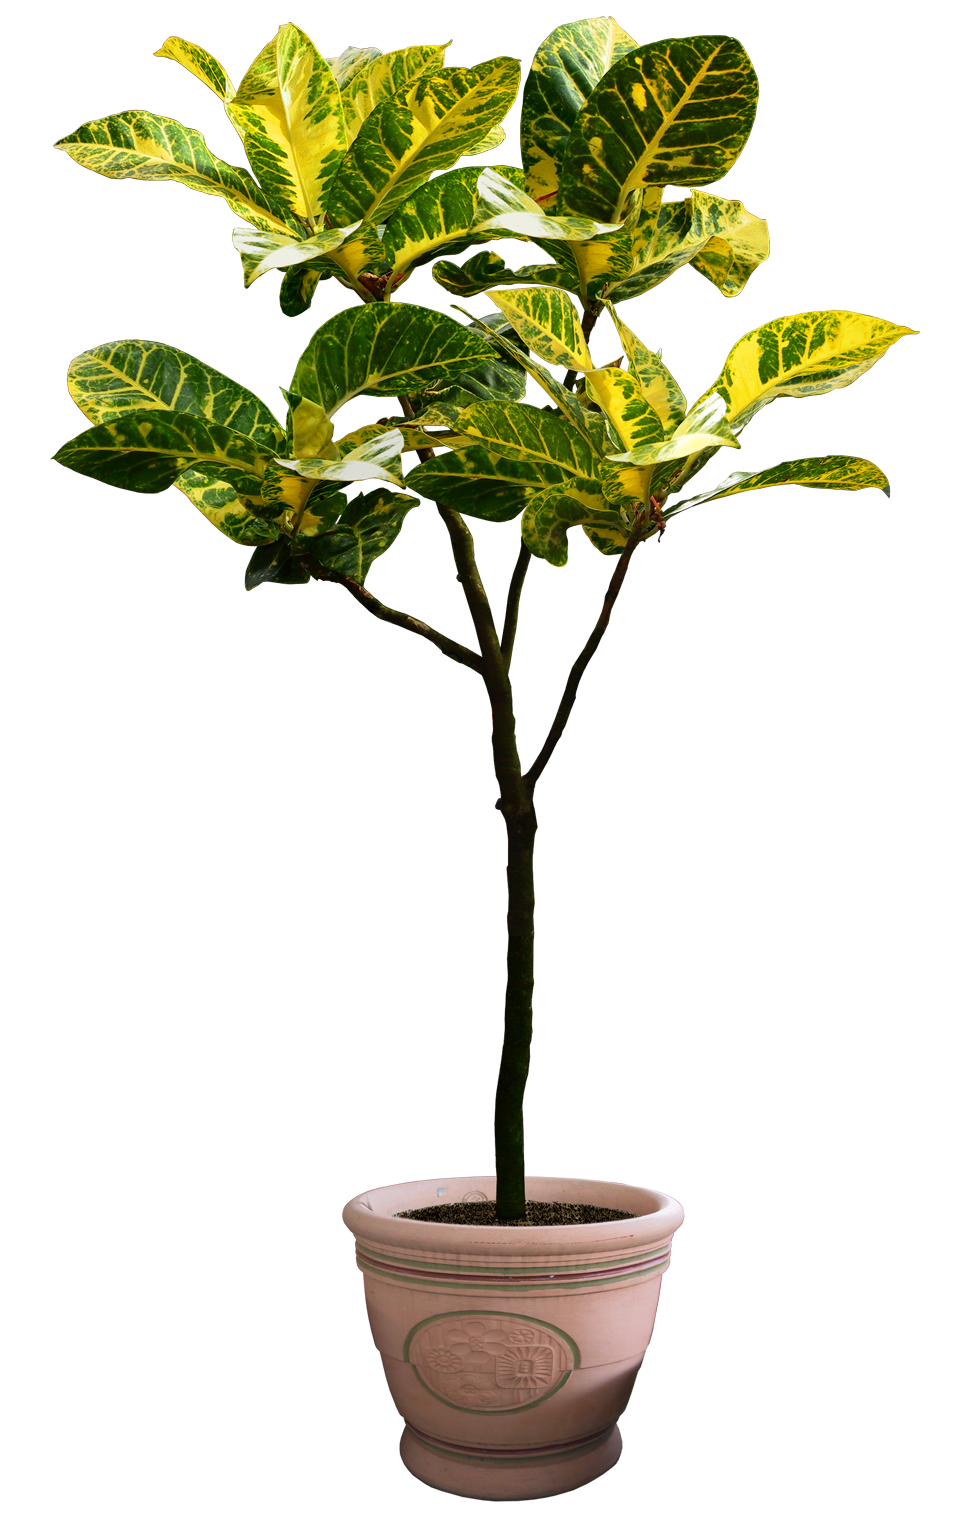 Beautiful Transparent Plants, Potted Flower Png image #44901